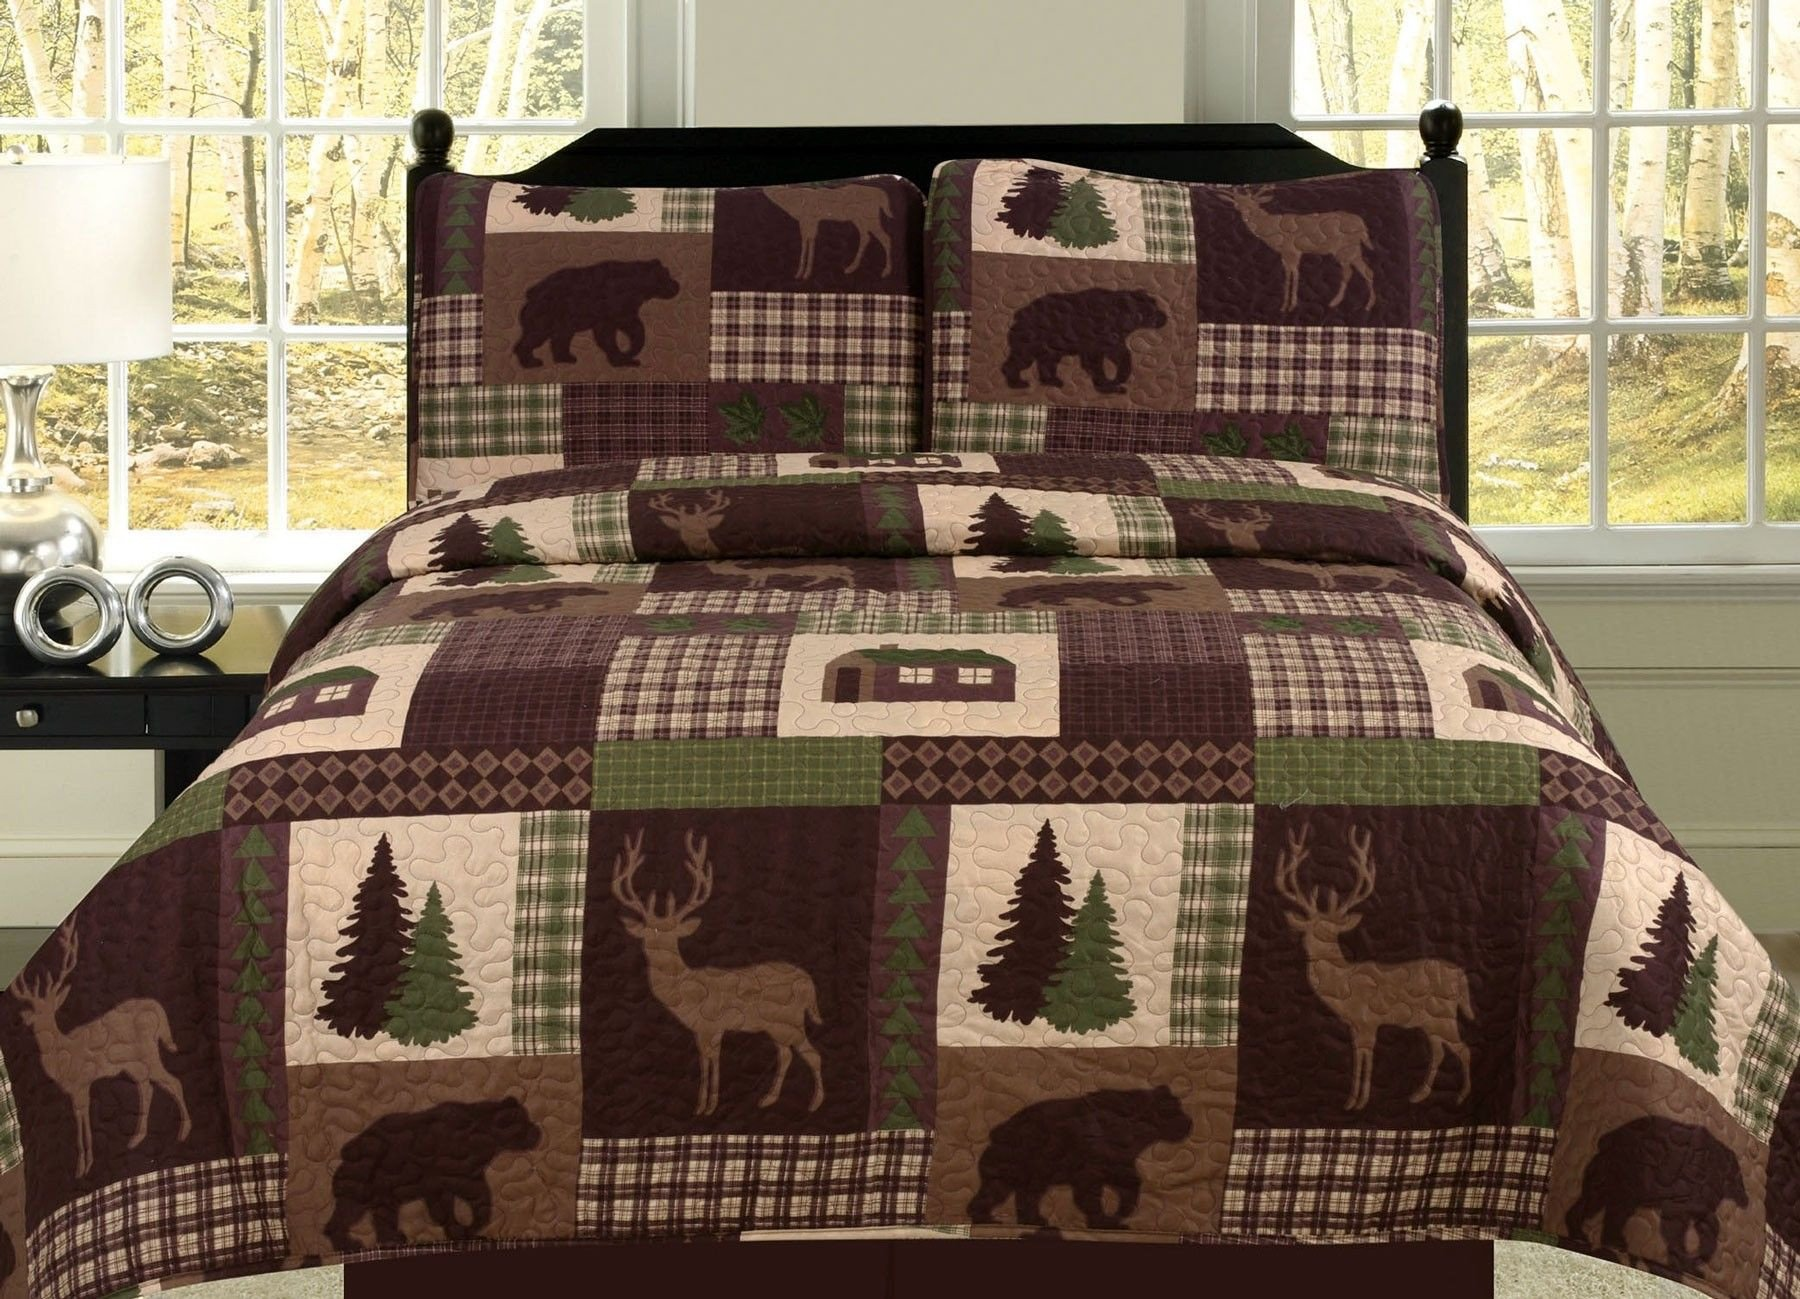 Log King Size Bedroom Set Lovely Beatrice Cozy Cabin Full Queen Quilt 3 Piece Set Rustic